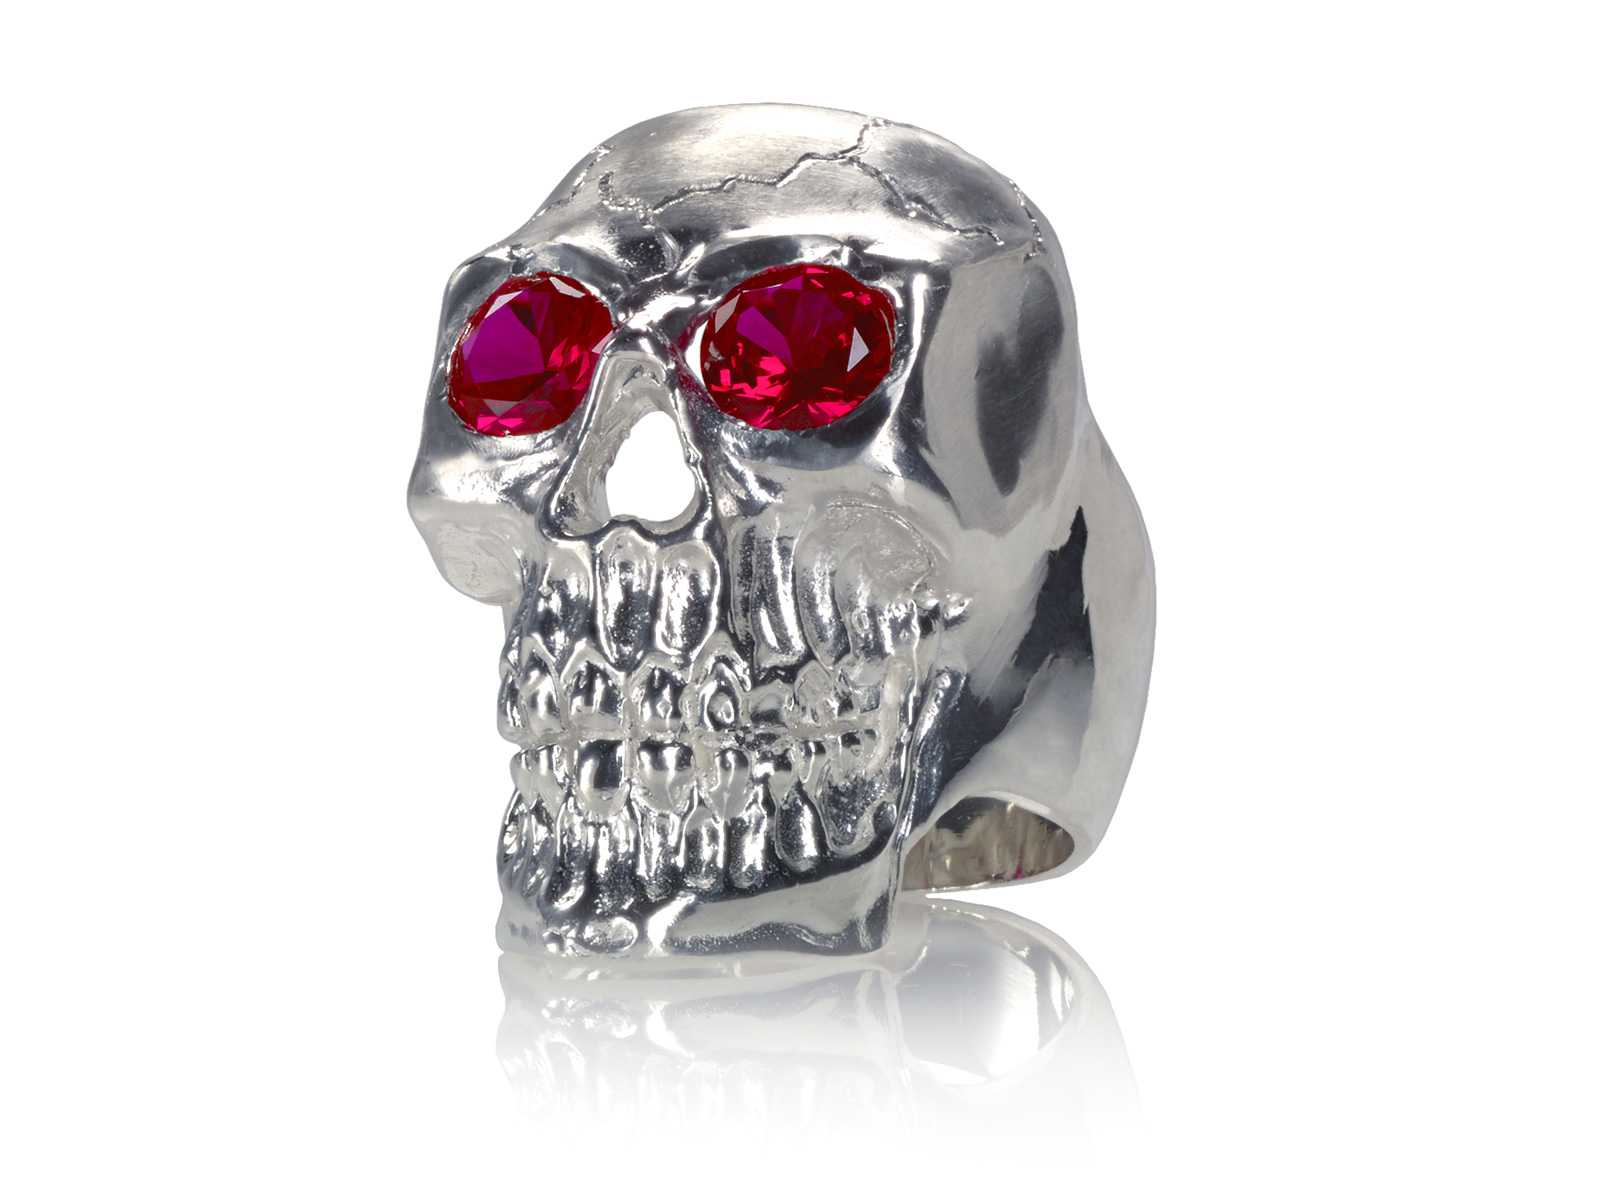 RG350A Barbarian Skull Ring Large Sterling Silver with Red Stones, designed by Steve Soffa